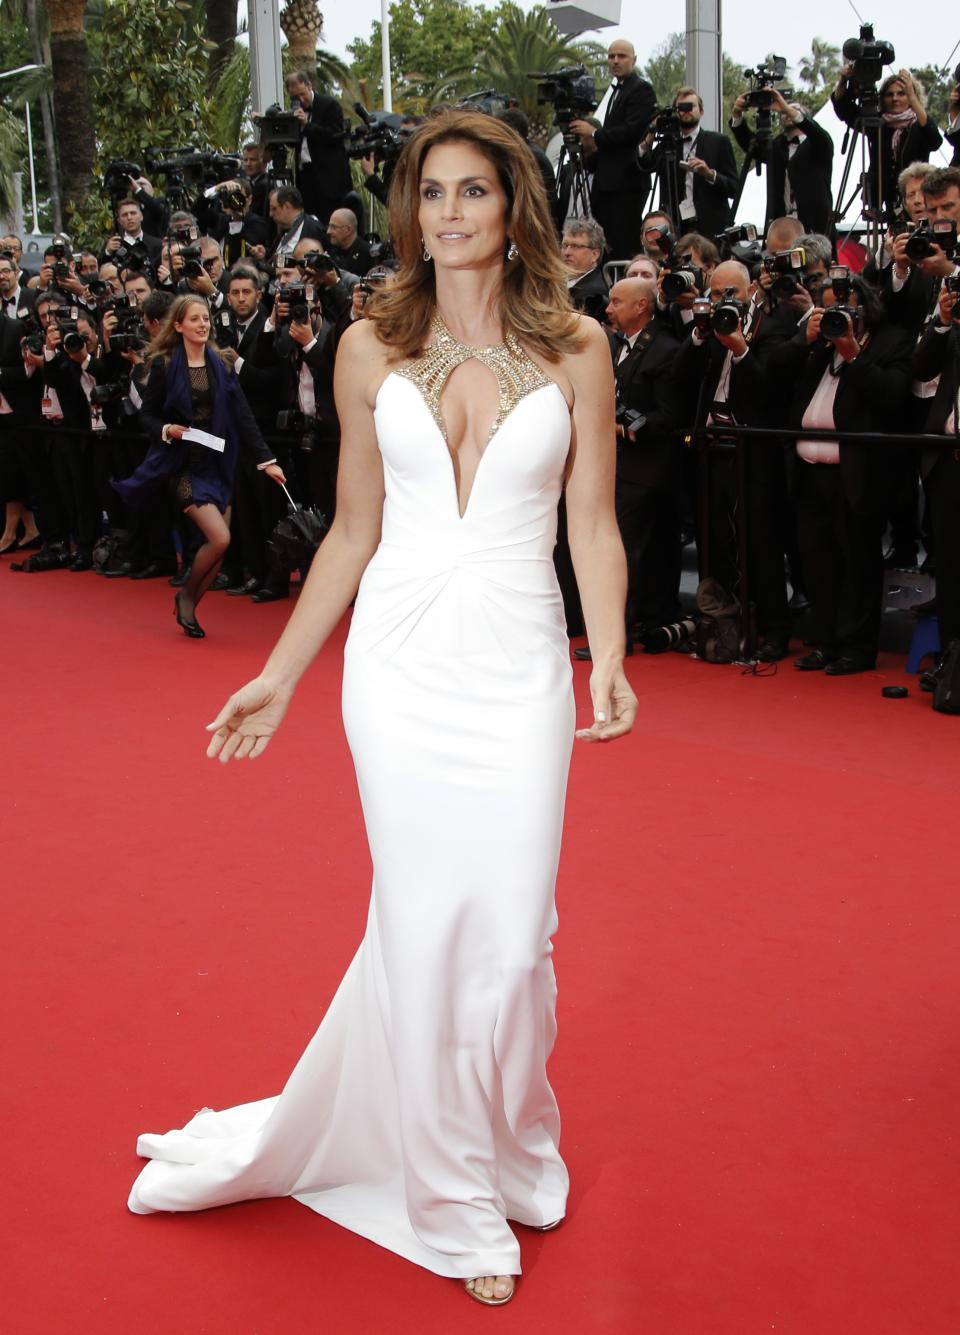 FILE - This May 15, 2013 file photo shows model Cindy Crawford wearing a Roberto Cavalli white gown with plunging beaded neckline as she arrives for the opening ceremony and the screening of The Great Gatsby at the 66th international film festival, in Cannes, southern France. (AP Photo/Francois Mori)